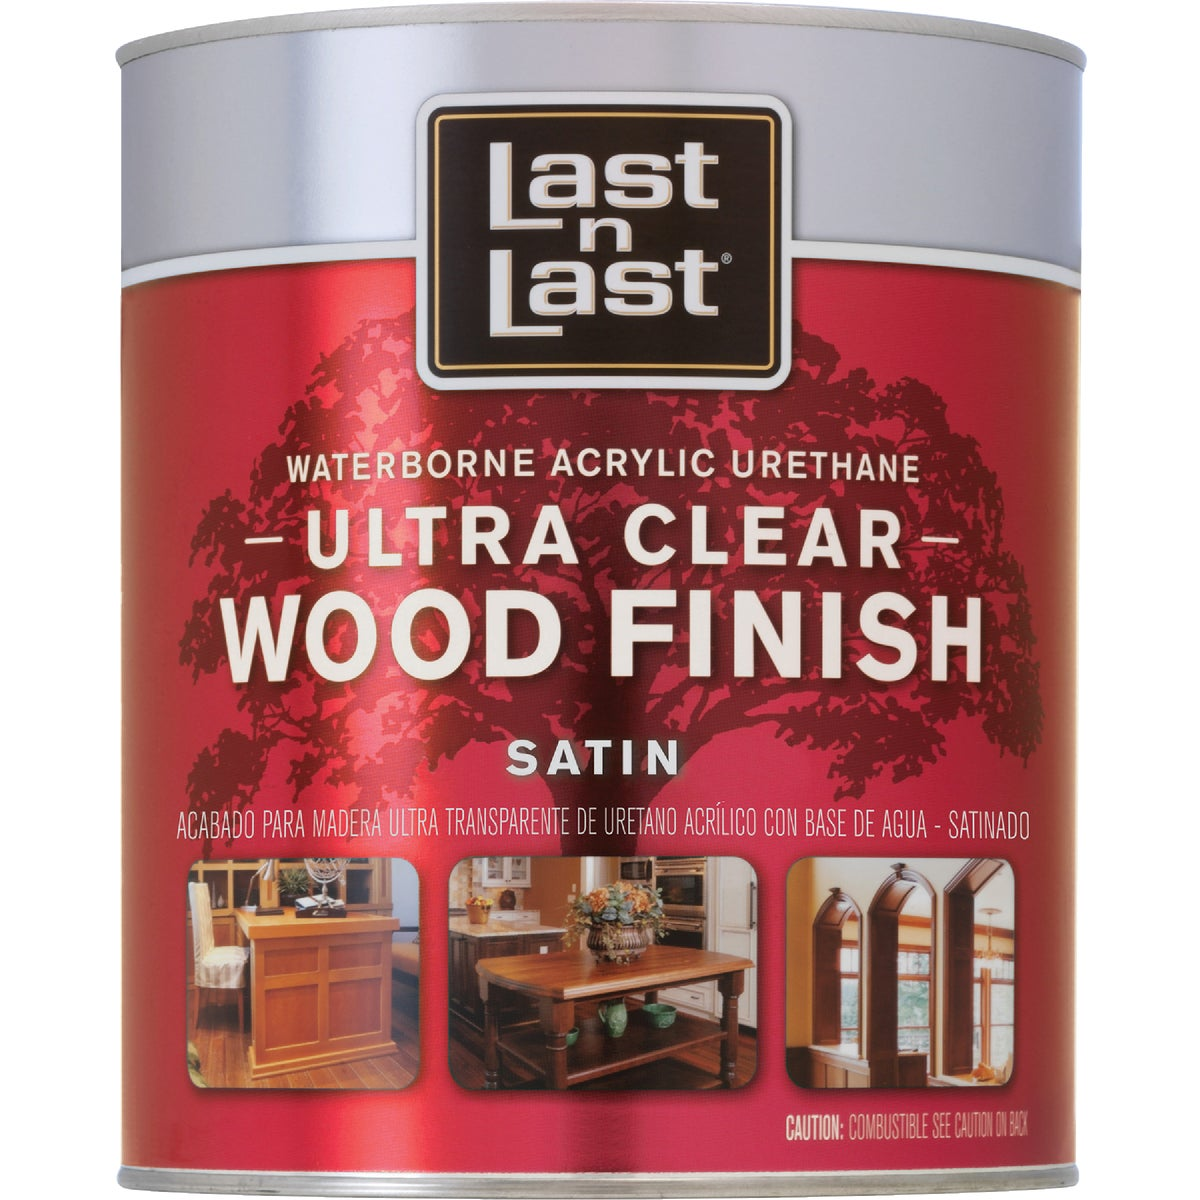 INT SATIN W/B URETHANE - 13104 by Absolute Coatings